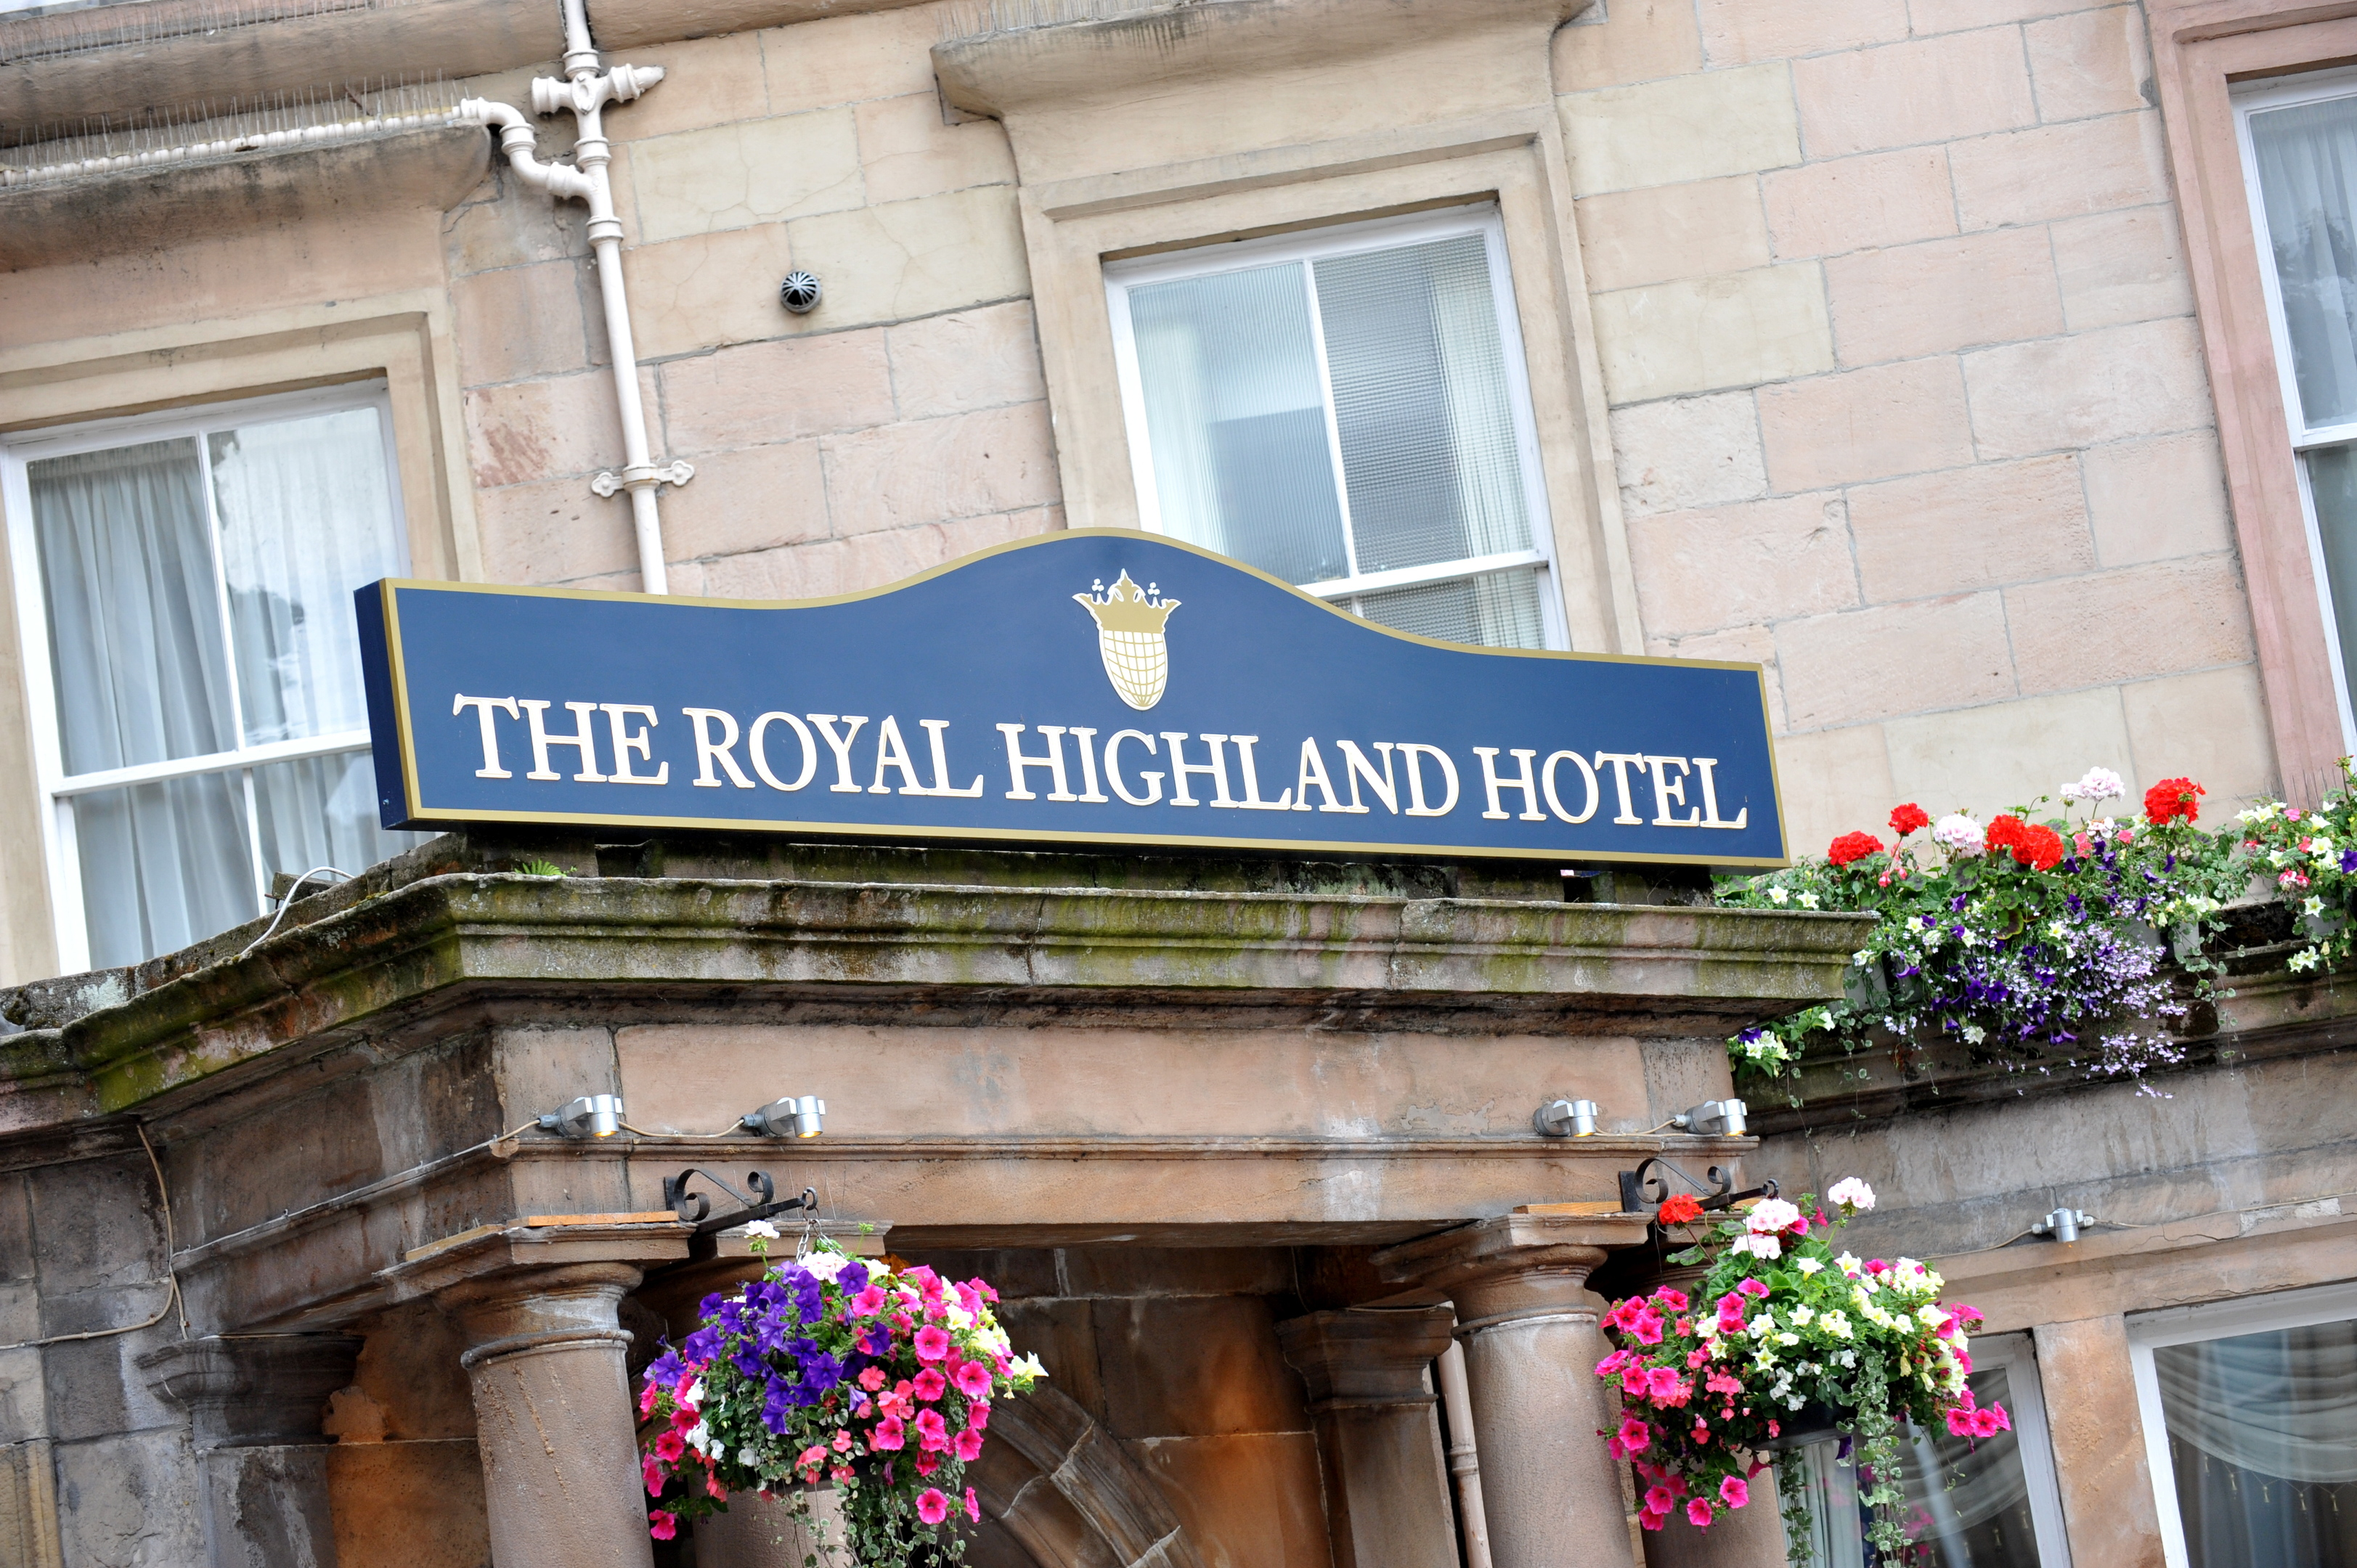 Inverness Railway Station facelift is being held back by a city hotel, it has been claimed.